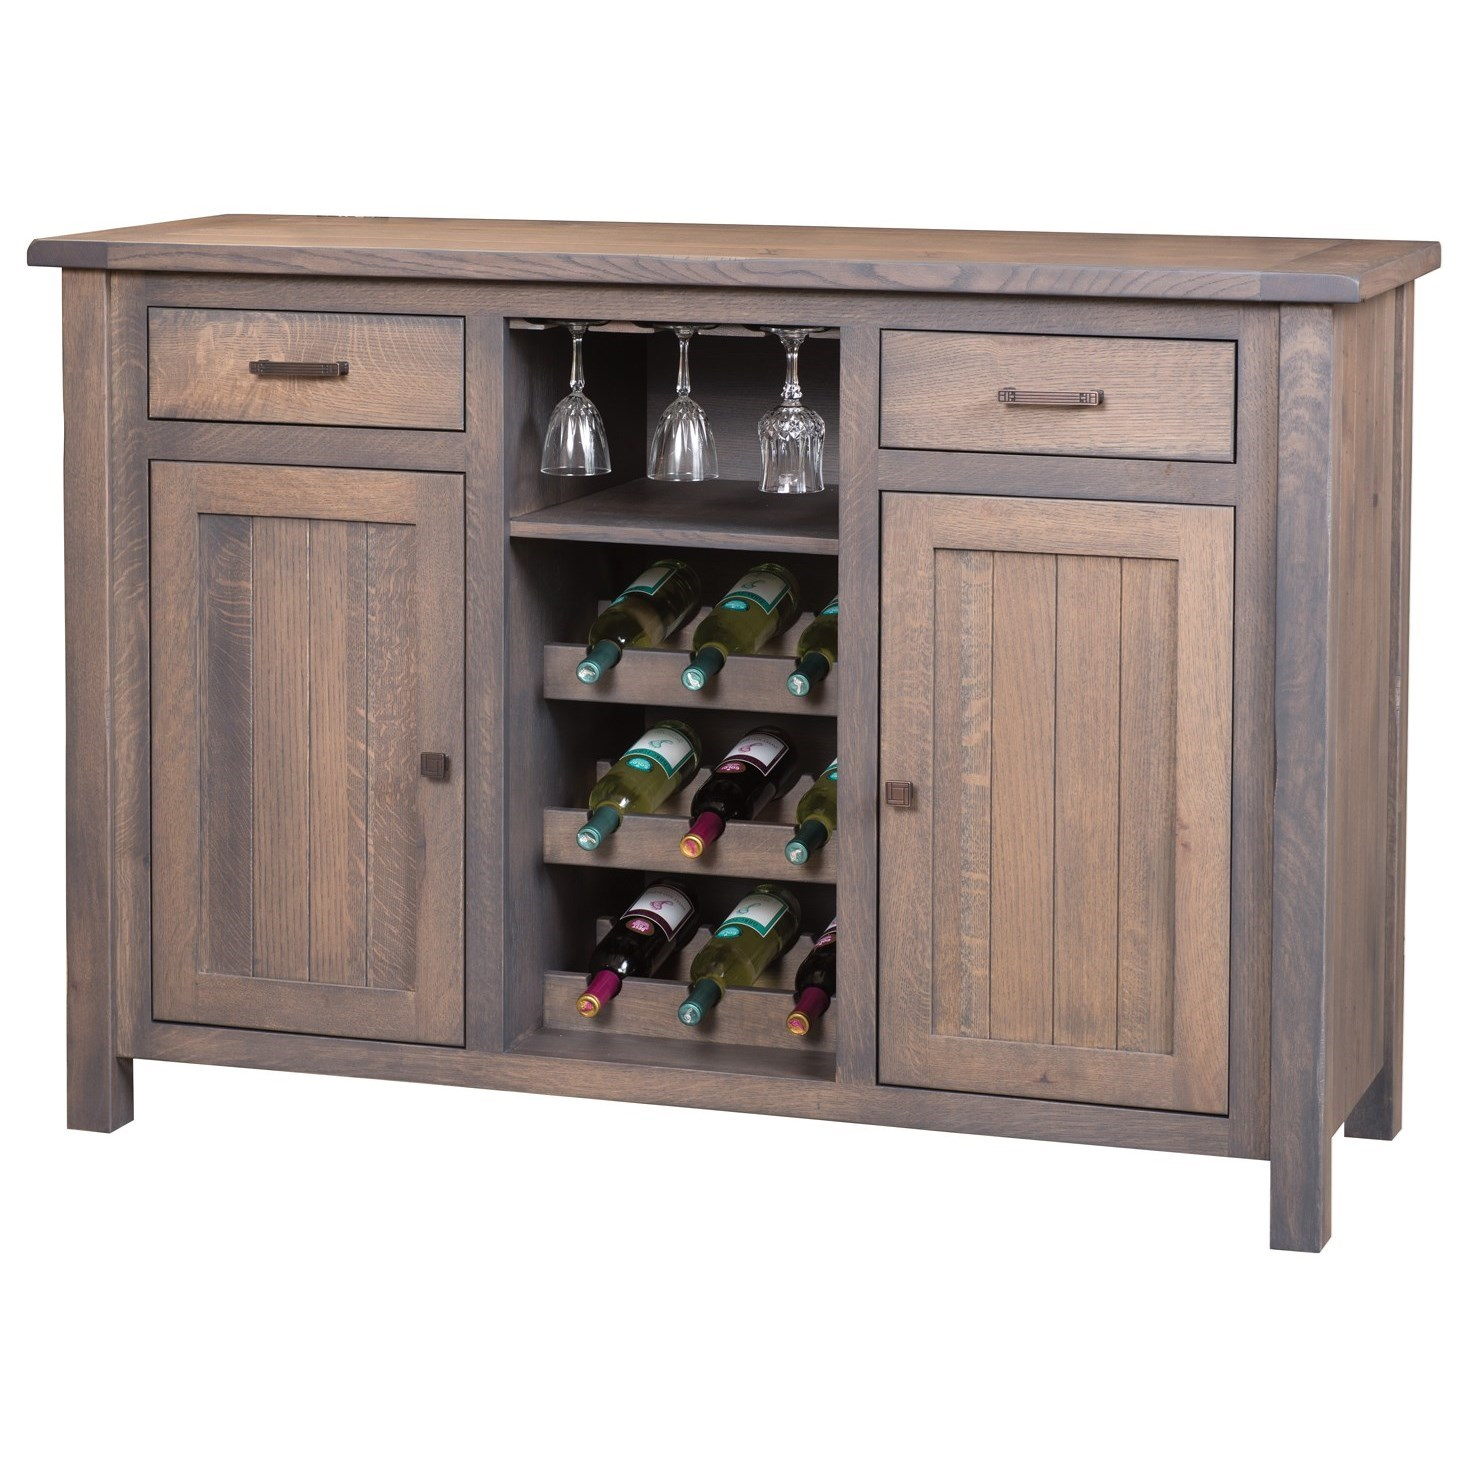 Adele Wine Cabinet by Meadow Lane Wood at Saugerties Furniture Mart